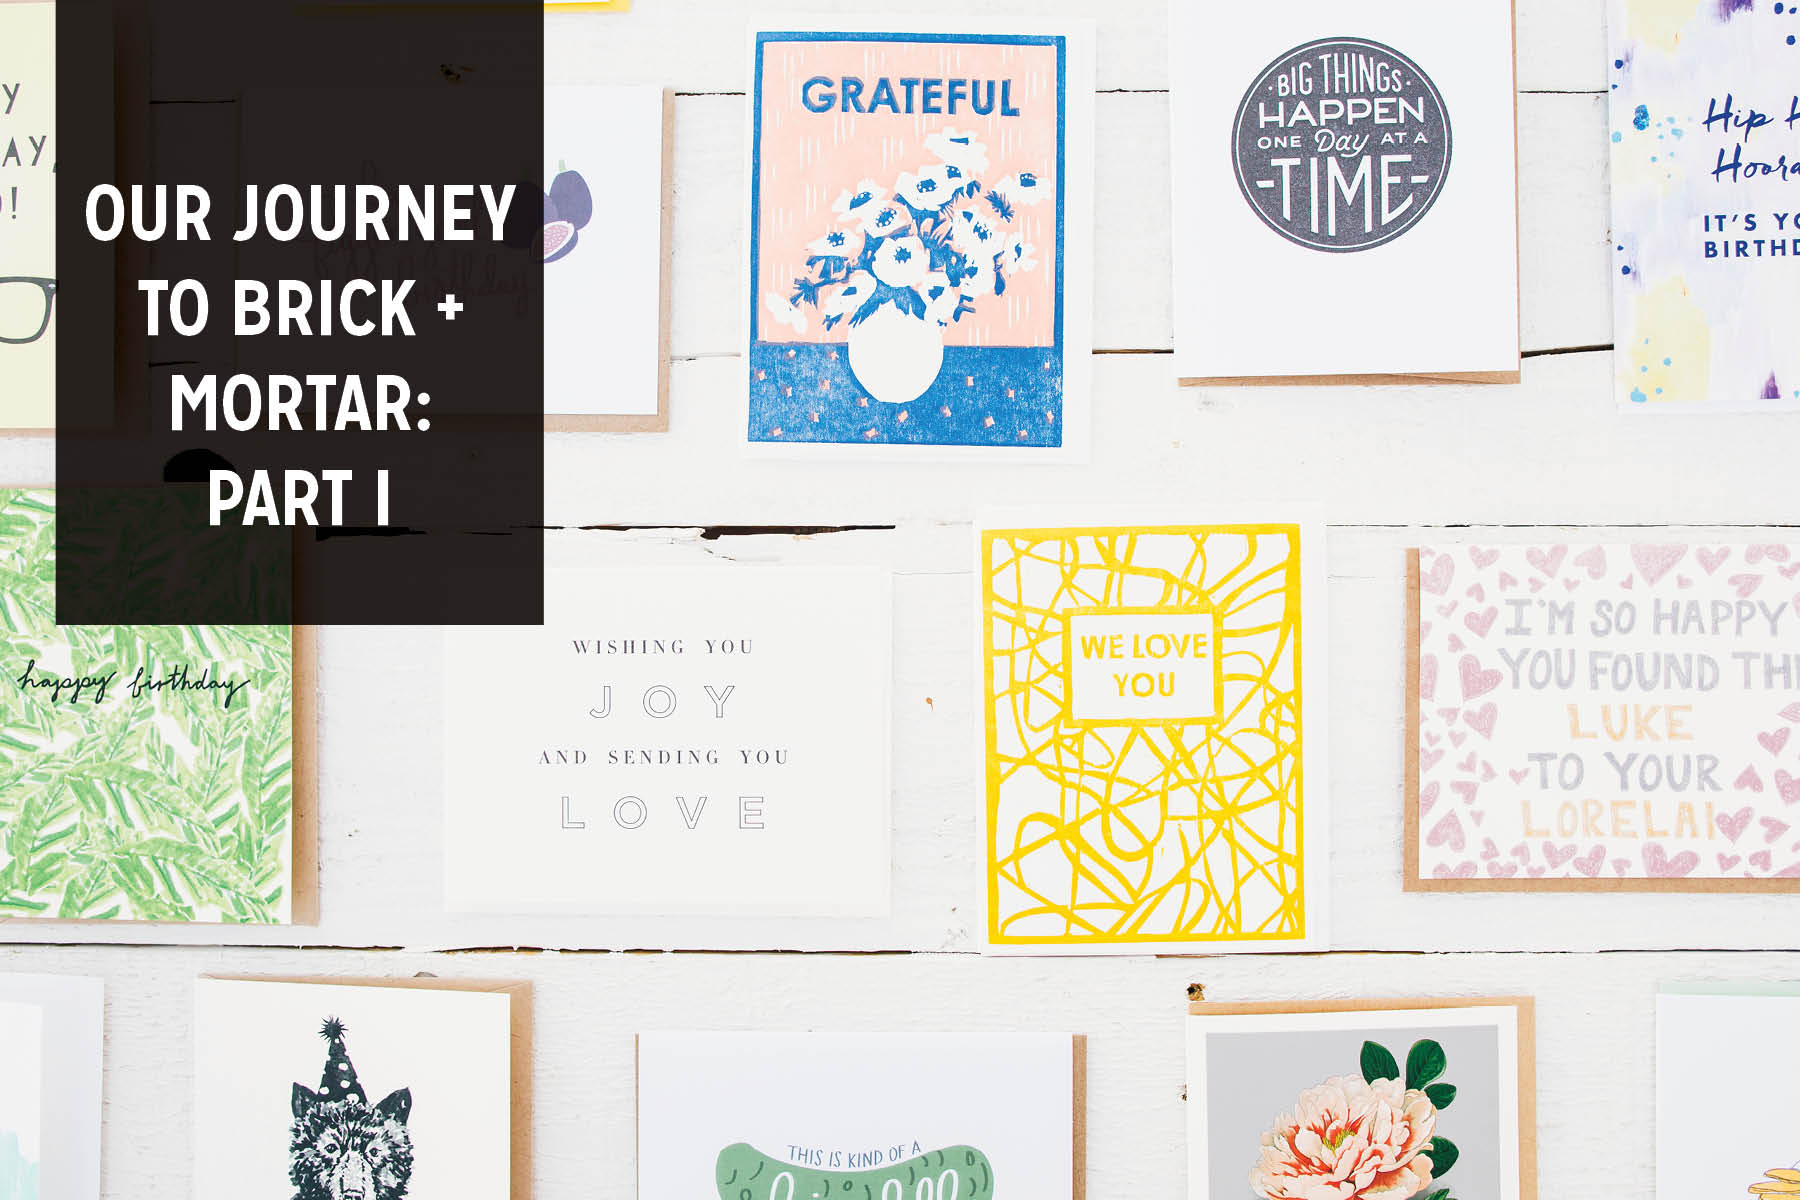 Paper Craft Pantry Austin Blog Small Business Brick and Mortar